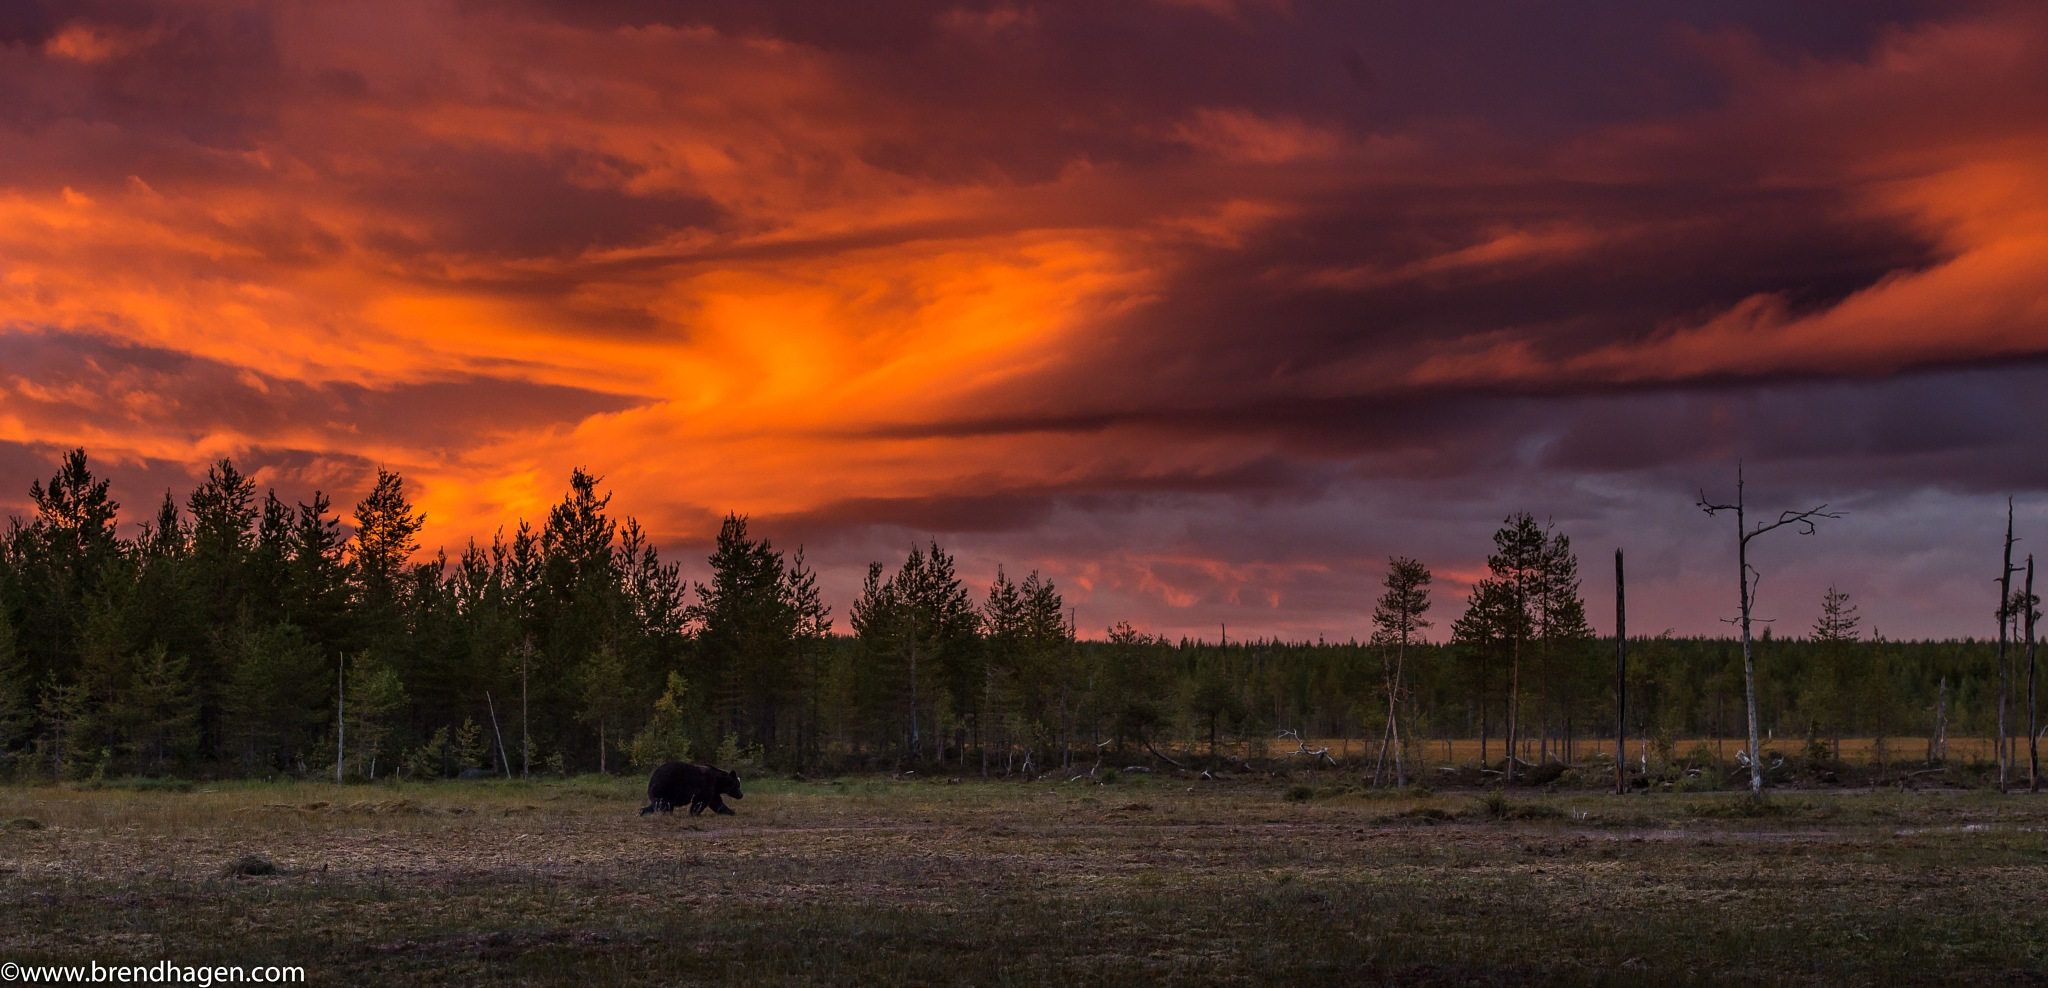 A Brown bear in the sunset by Roger Brendhagen